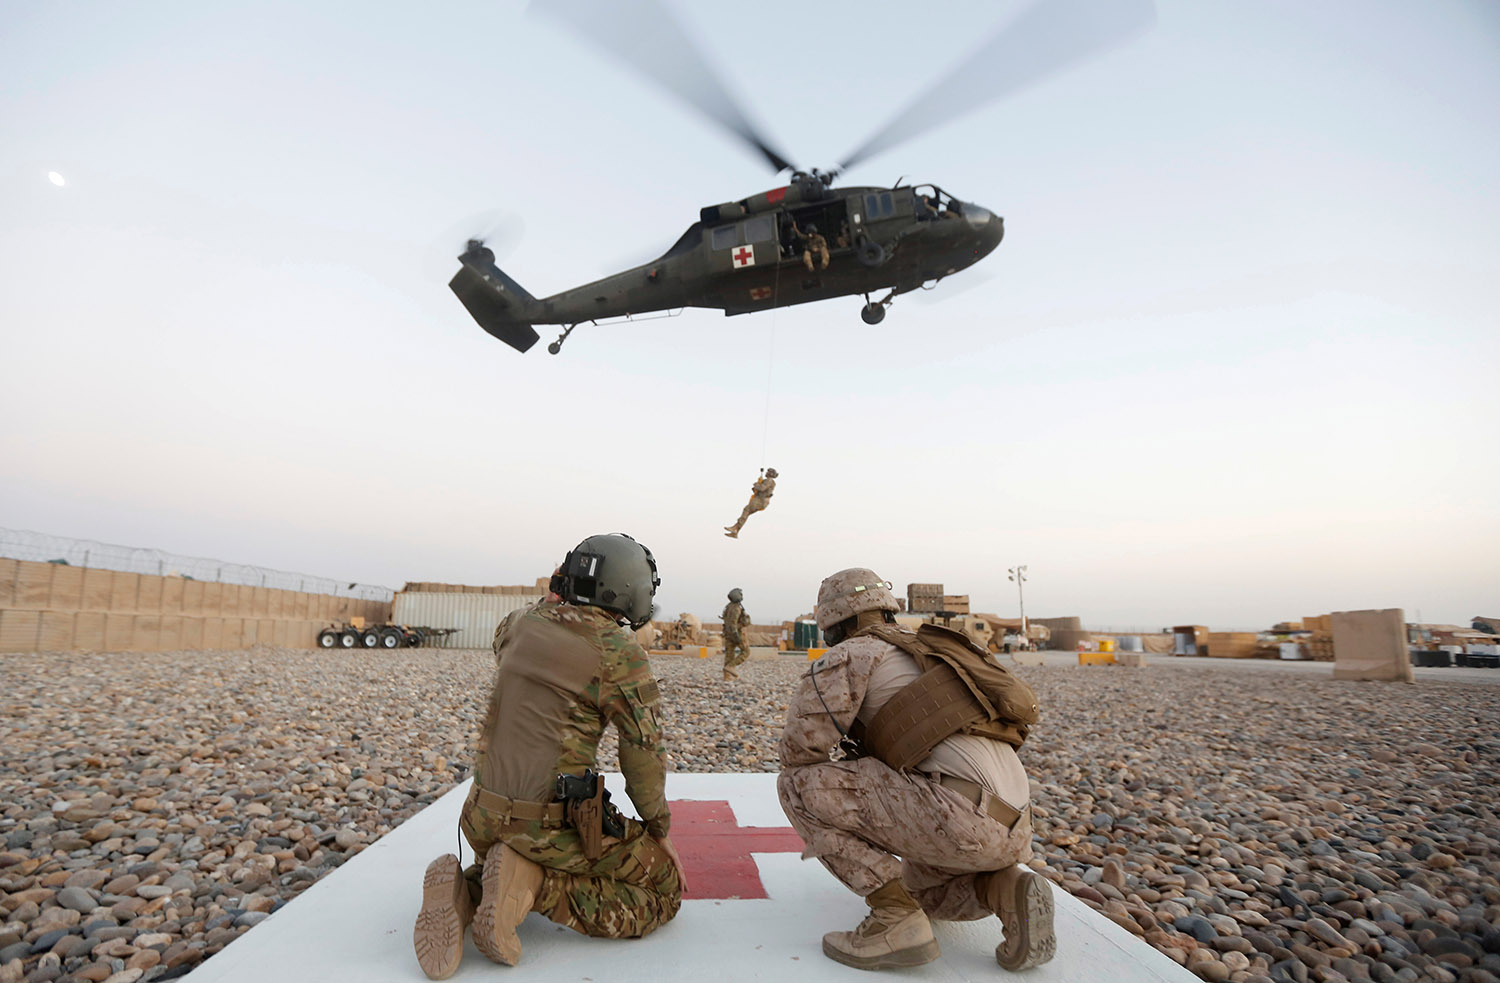 A U.S. Navy Corpsman and U.S. soldier take part in a helicopter Medevac exercise in Helmand province, Afghanistan, July 6, 2017.REUTERS/Omar Sobhani